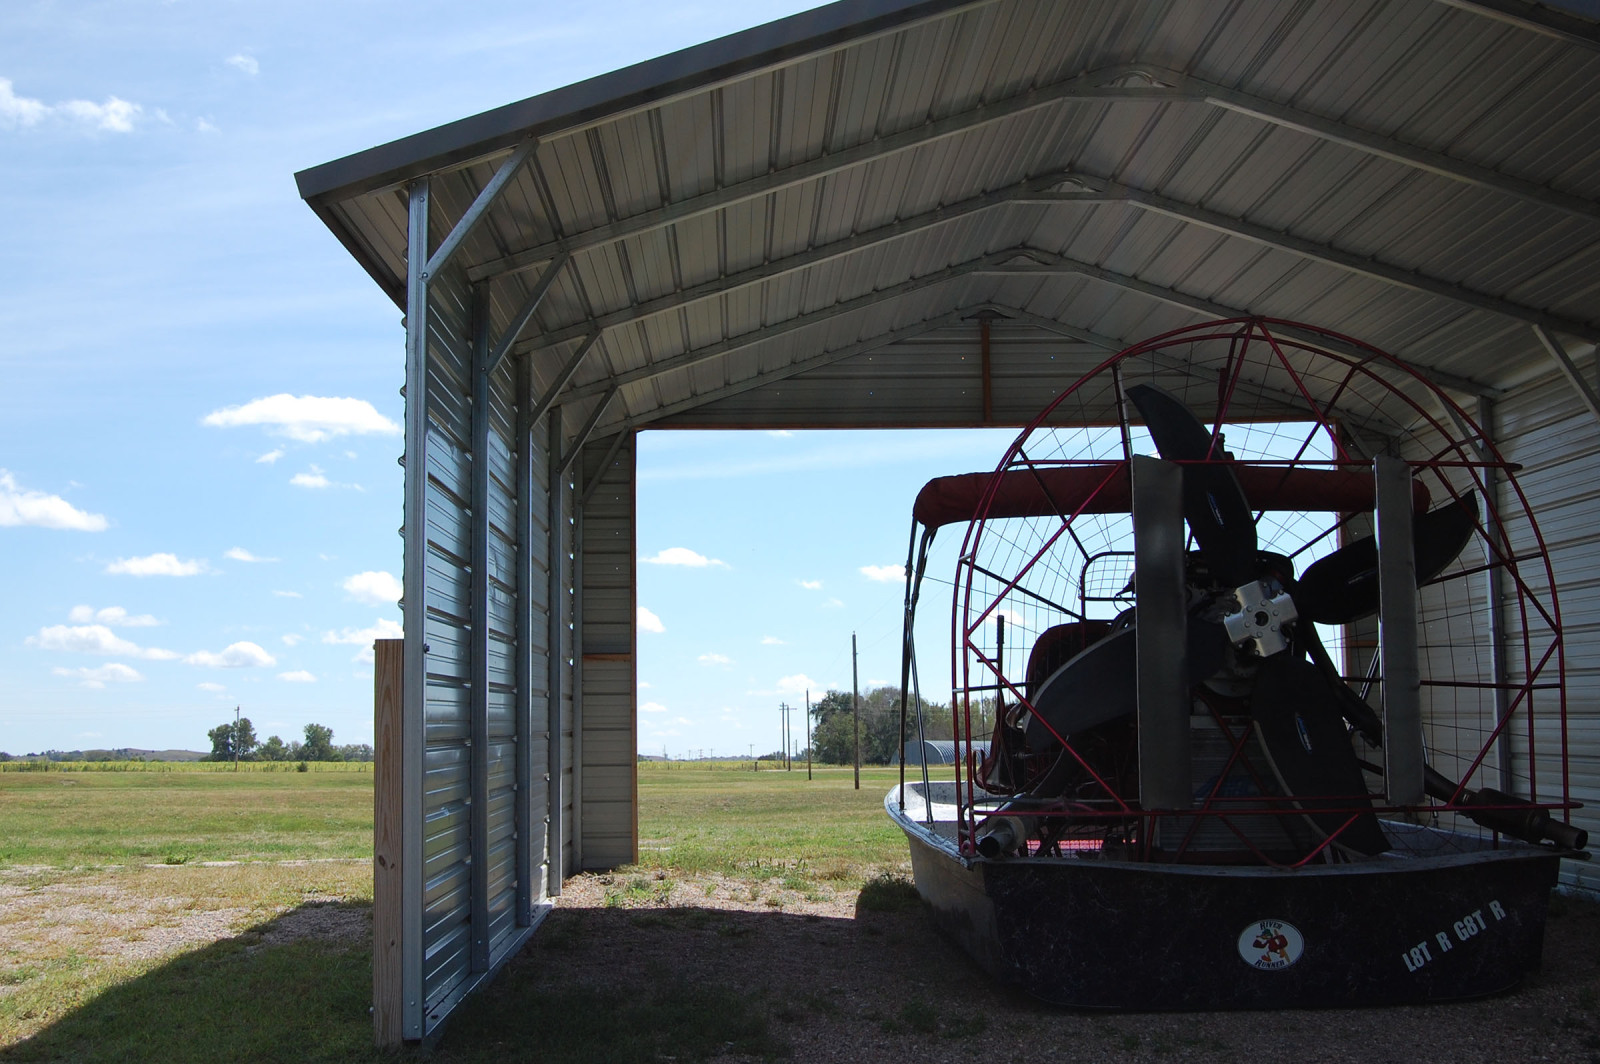 Jim Rice's airboat. (Ariana Brocious)